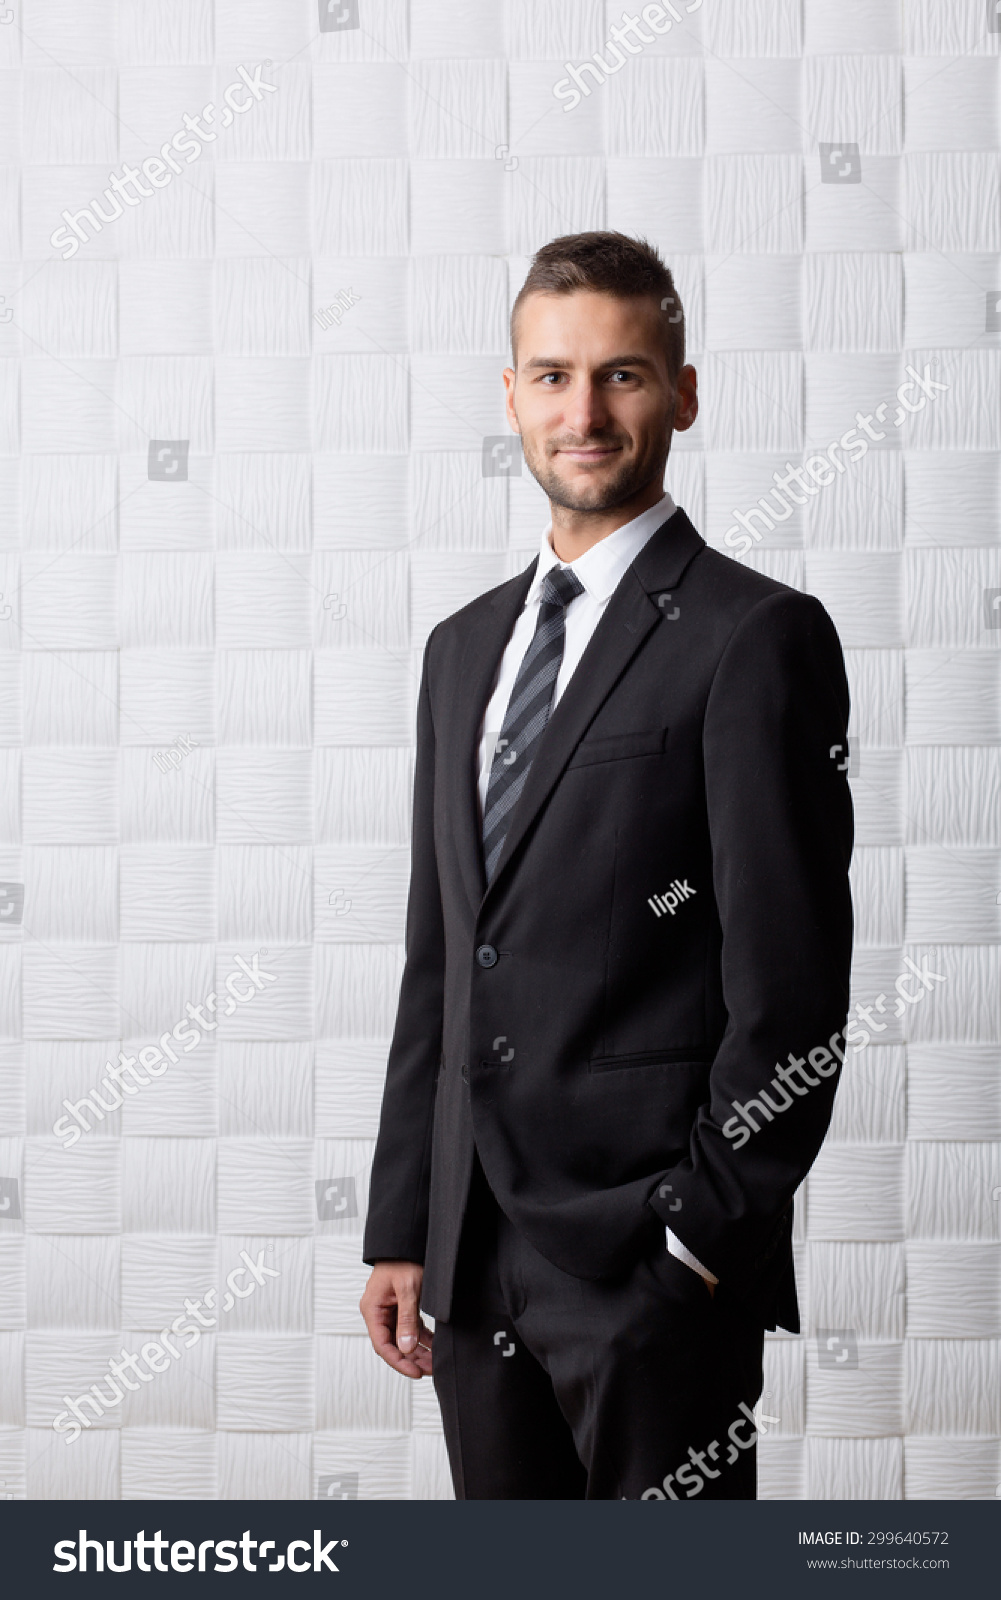 young handsome businessman smiling camera shorthaired stock photo young handsome businessman smiling for the camera short haired tall man in black business